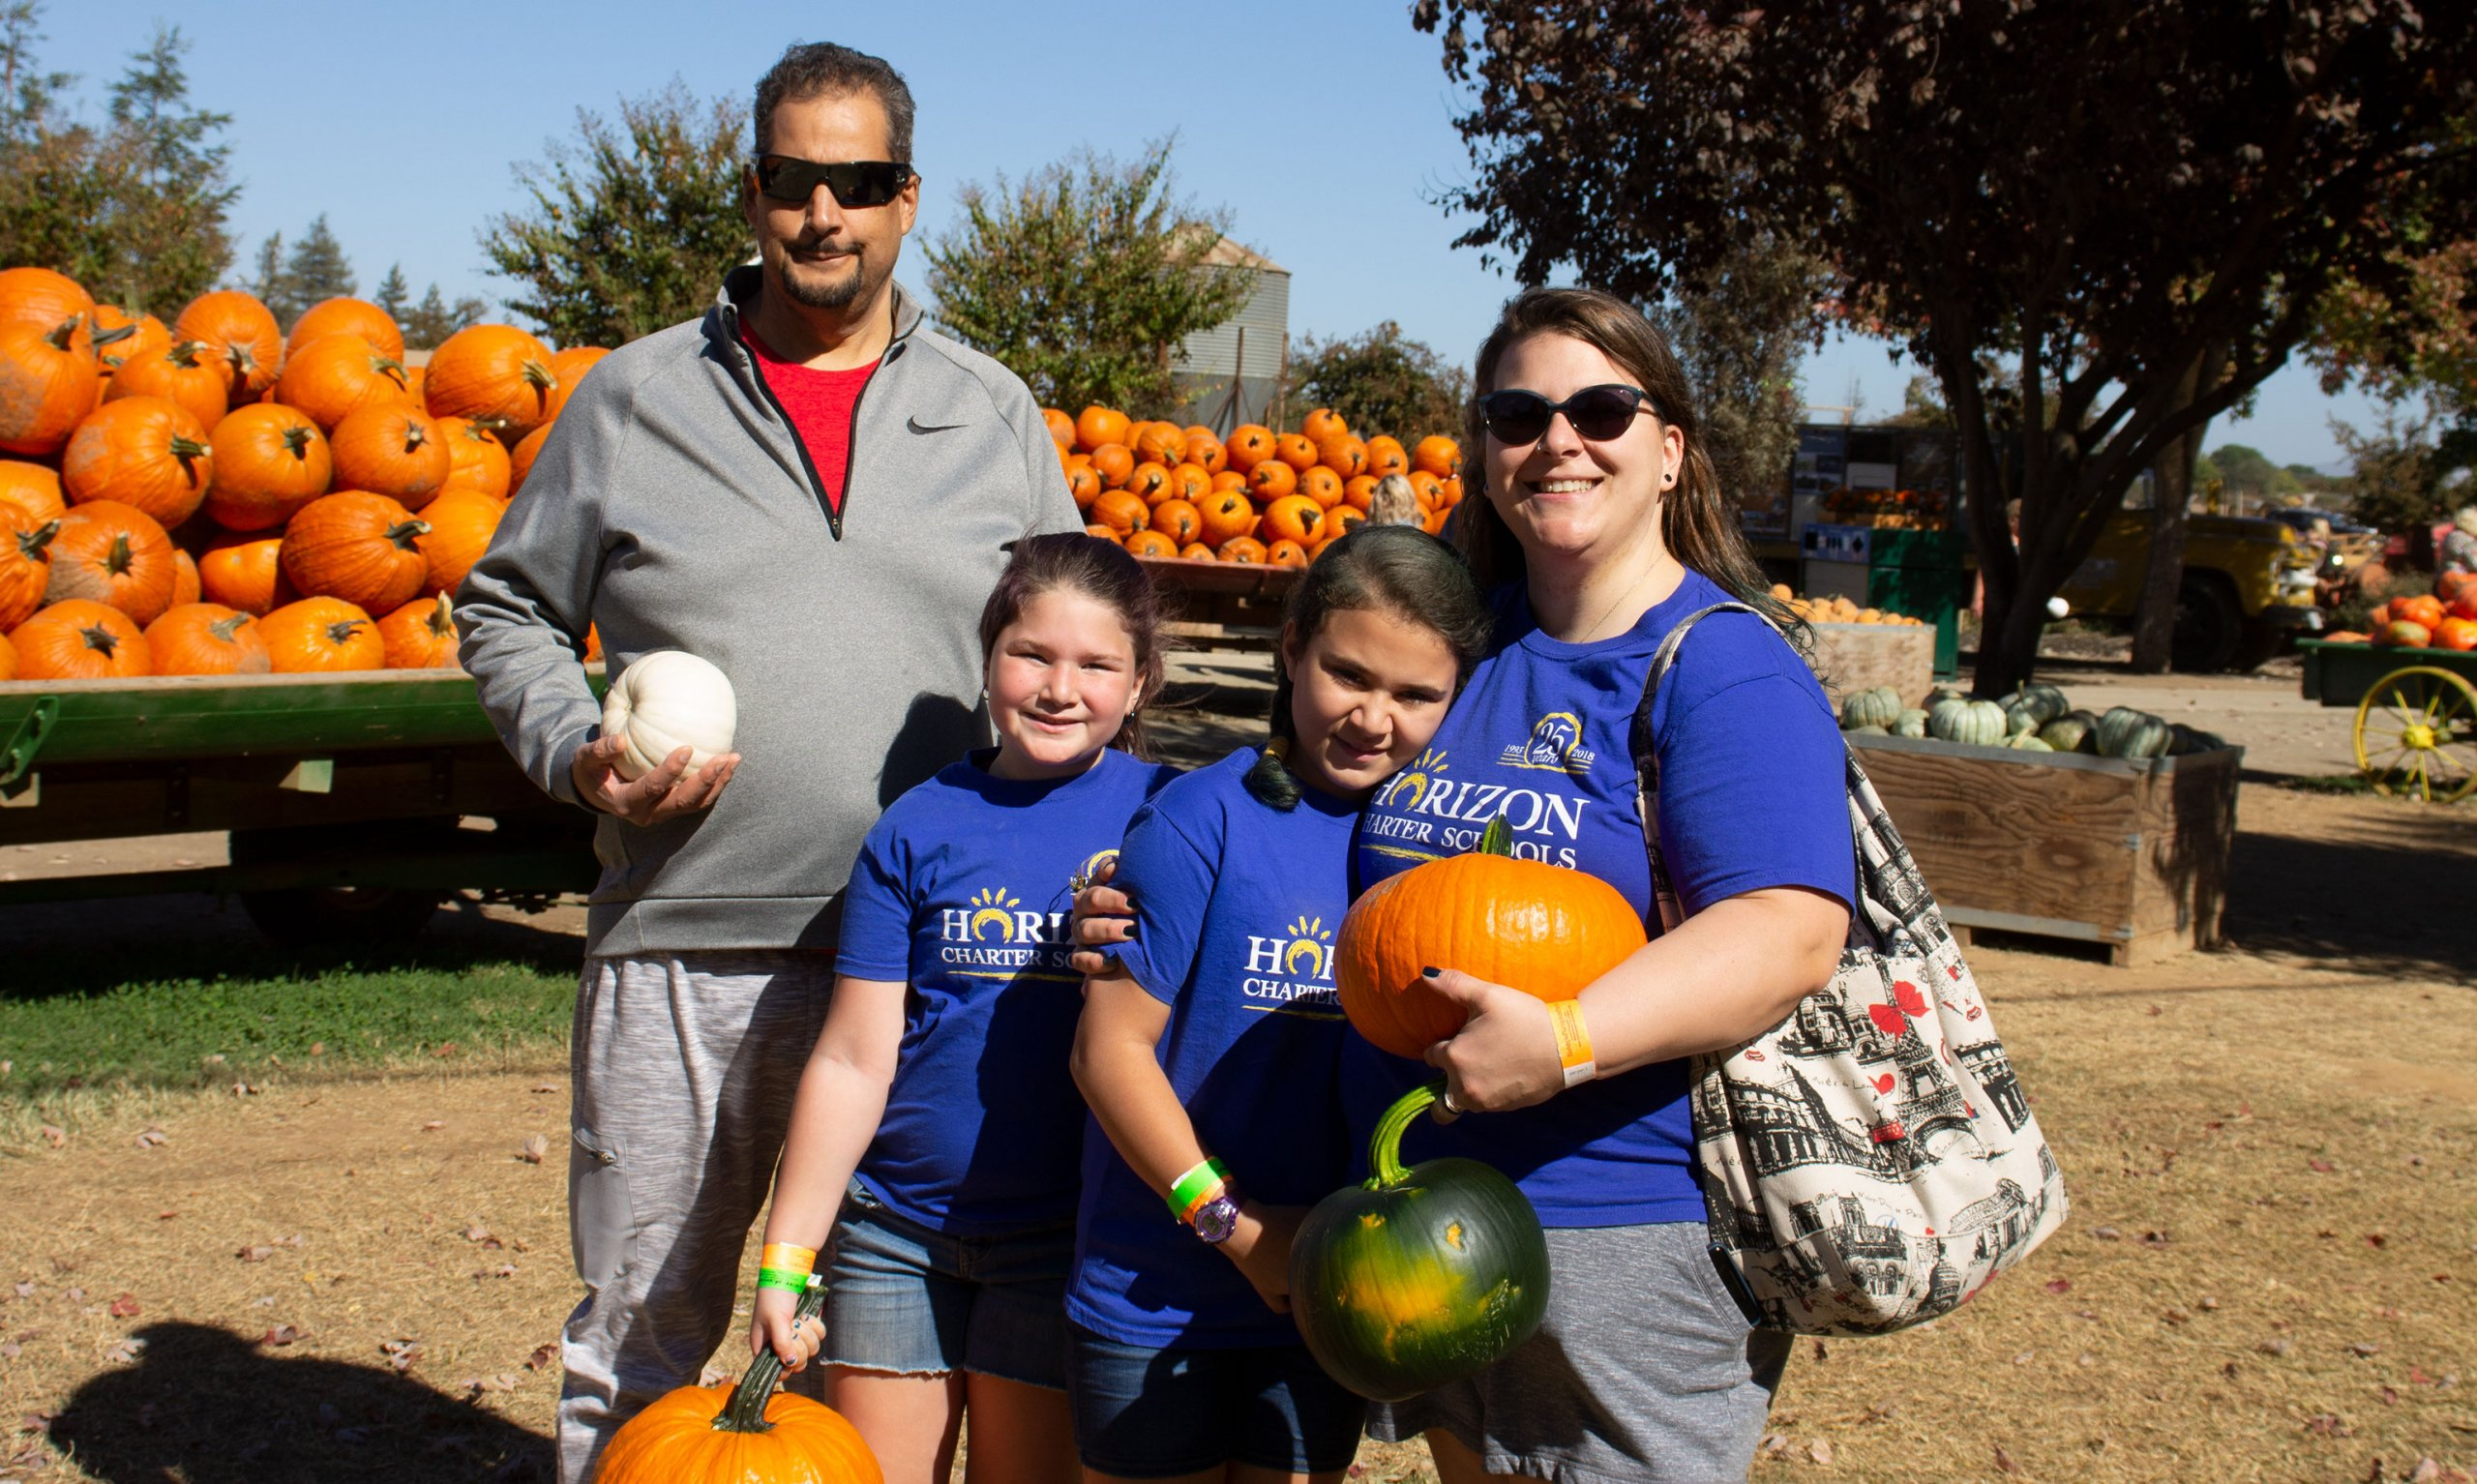 A Horizon Charter Schools family during a field trip